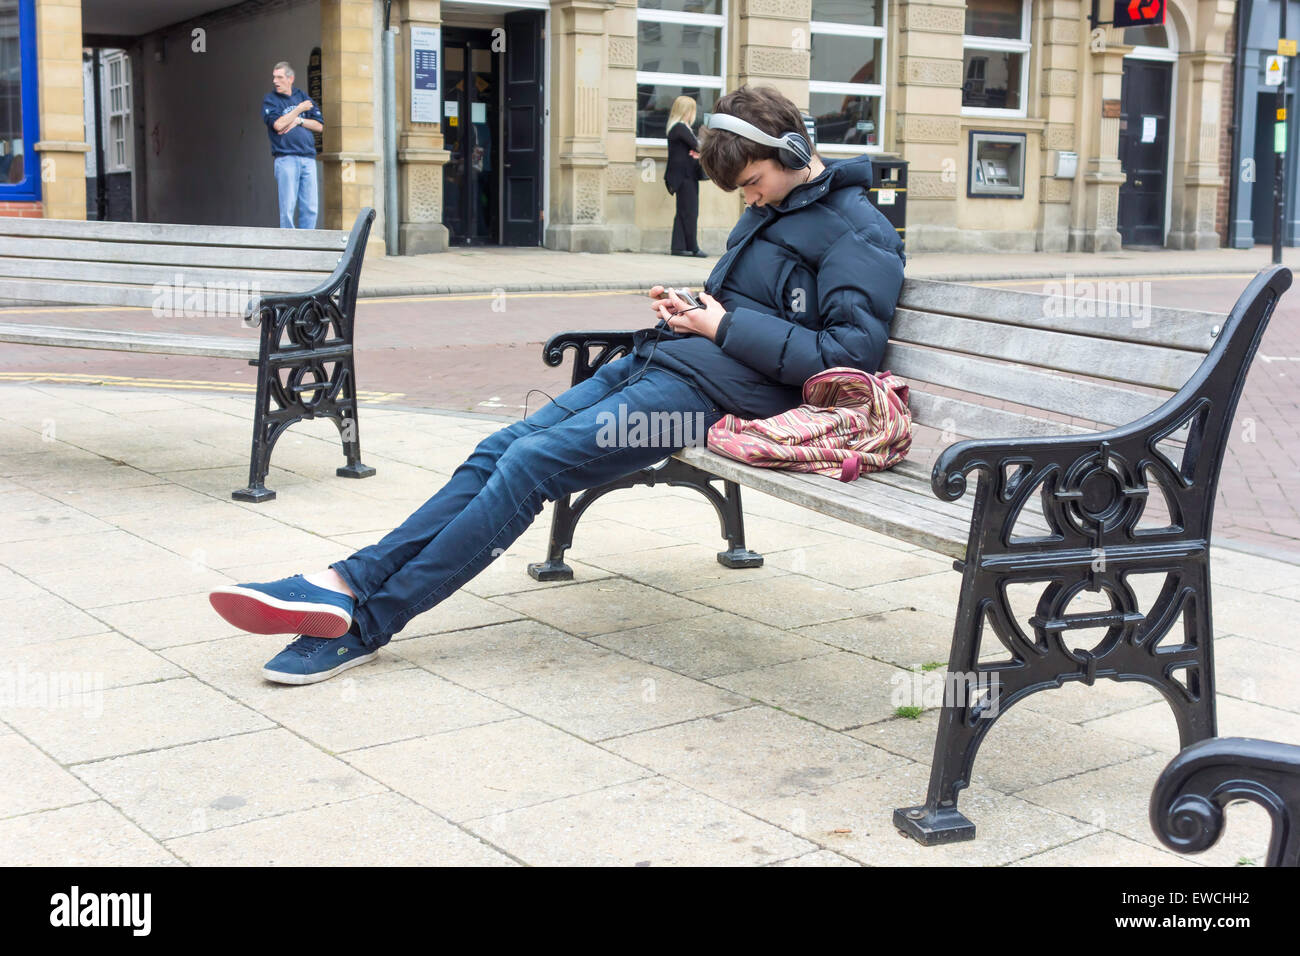 Town Centre young man oh a seat with headphones engrossed in his mobile phone telephone - Stock Image